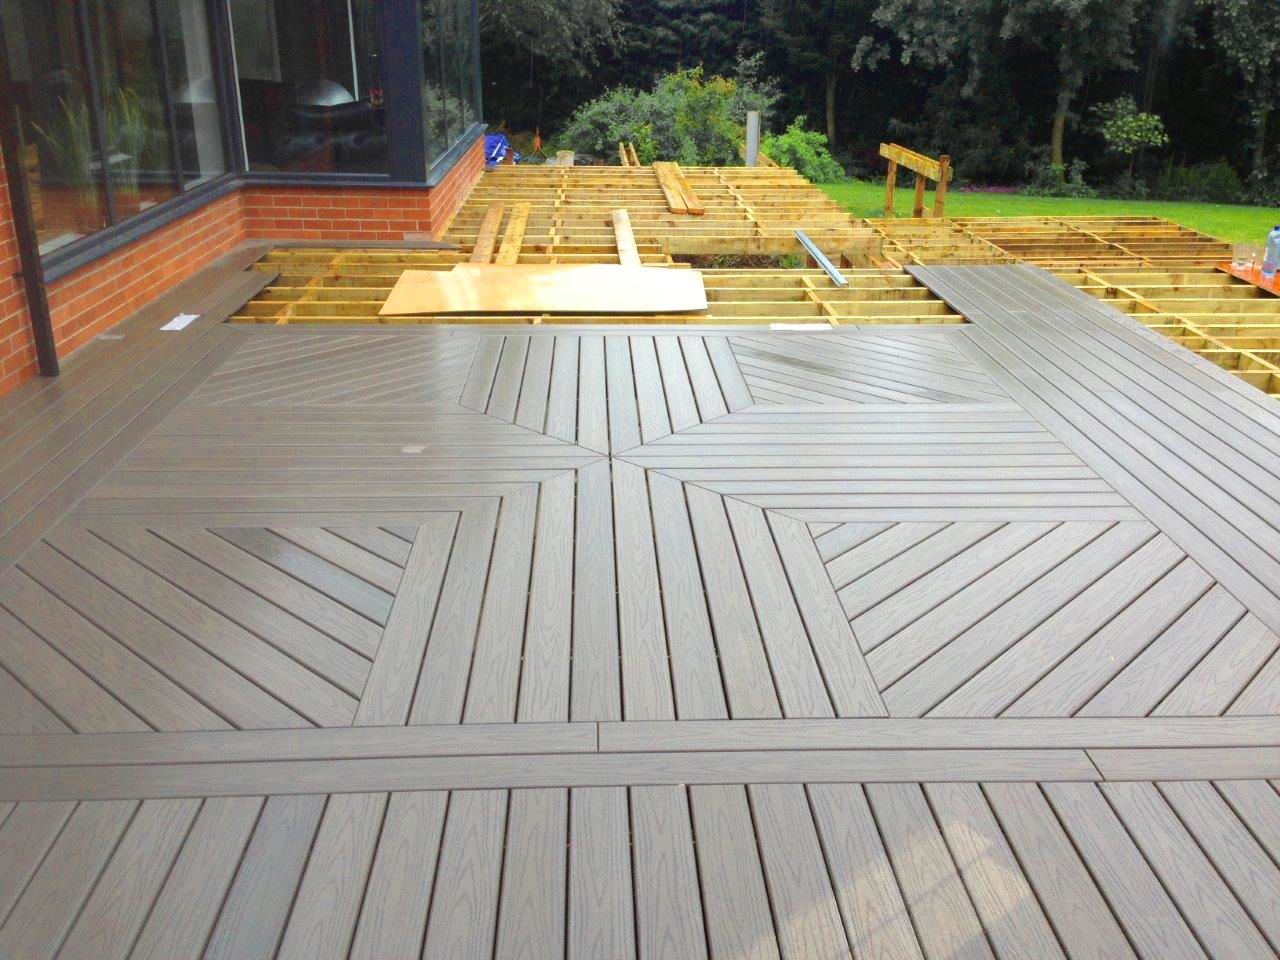 Dreaming Of An Outdoor Living Space That Showcases Your Personal Style Start With Your Deck Unique Patterns And Color Combina Deck Deck Patterns Azek Decking